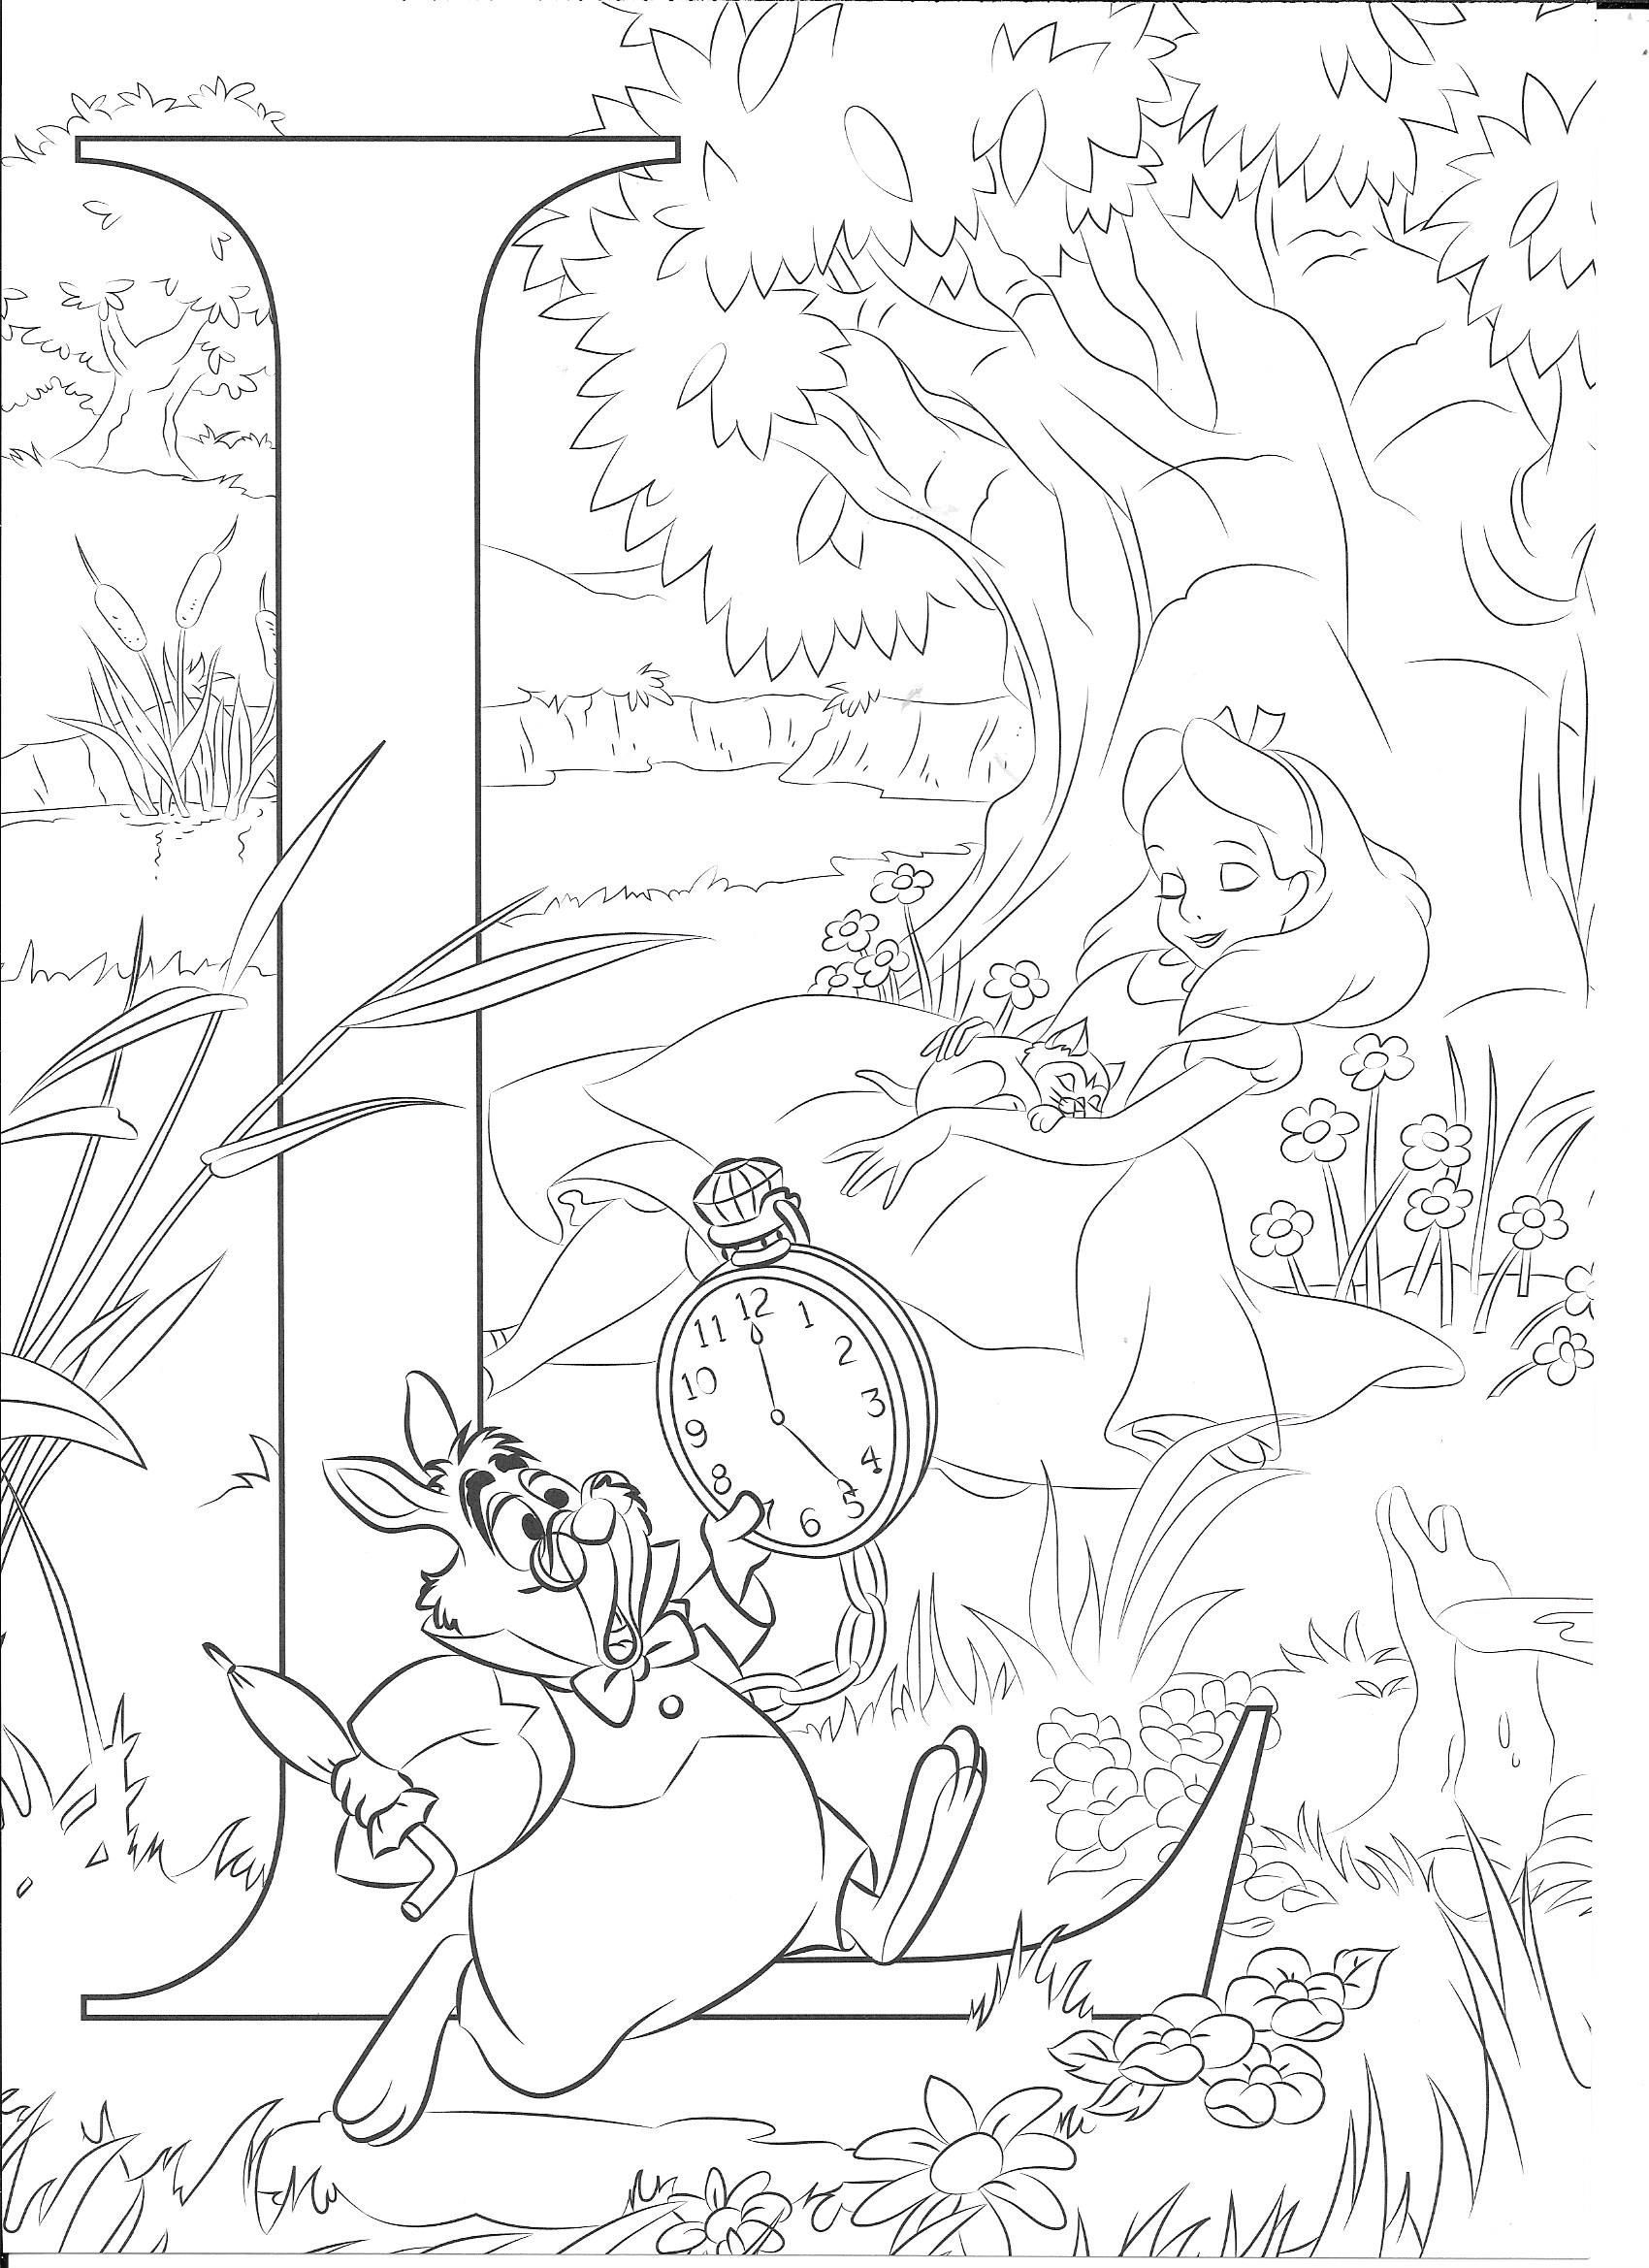 Coloring Page Disney Coloring Sheets Disney Coloring Pages Disney Alphabet In 2021 Disney Coloring Pages Disney Coloring Sheets Abc Coloring Pages